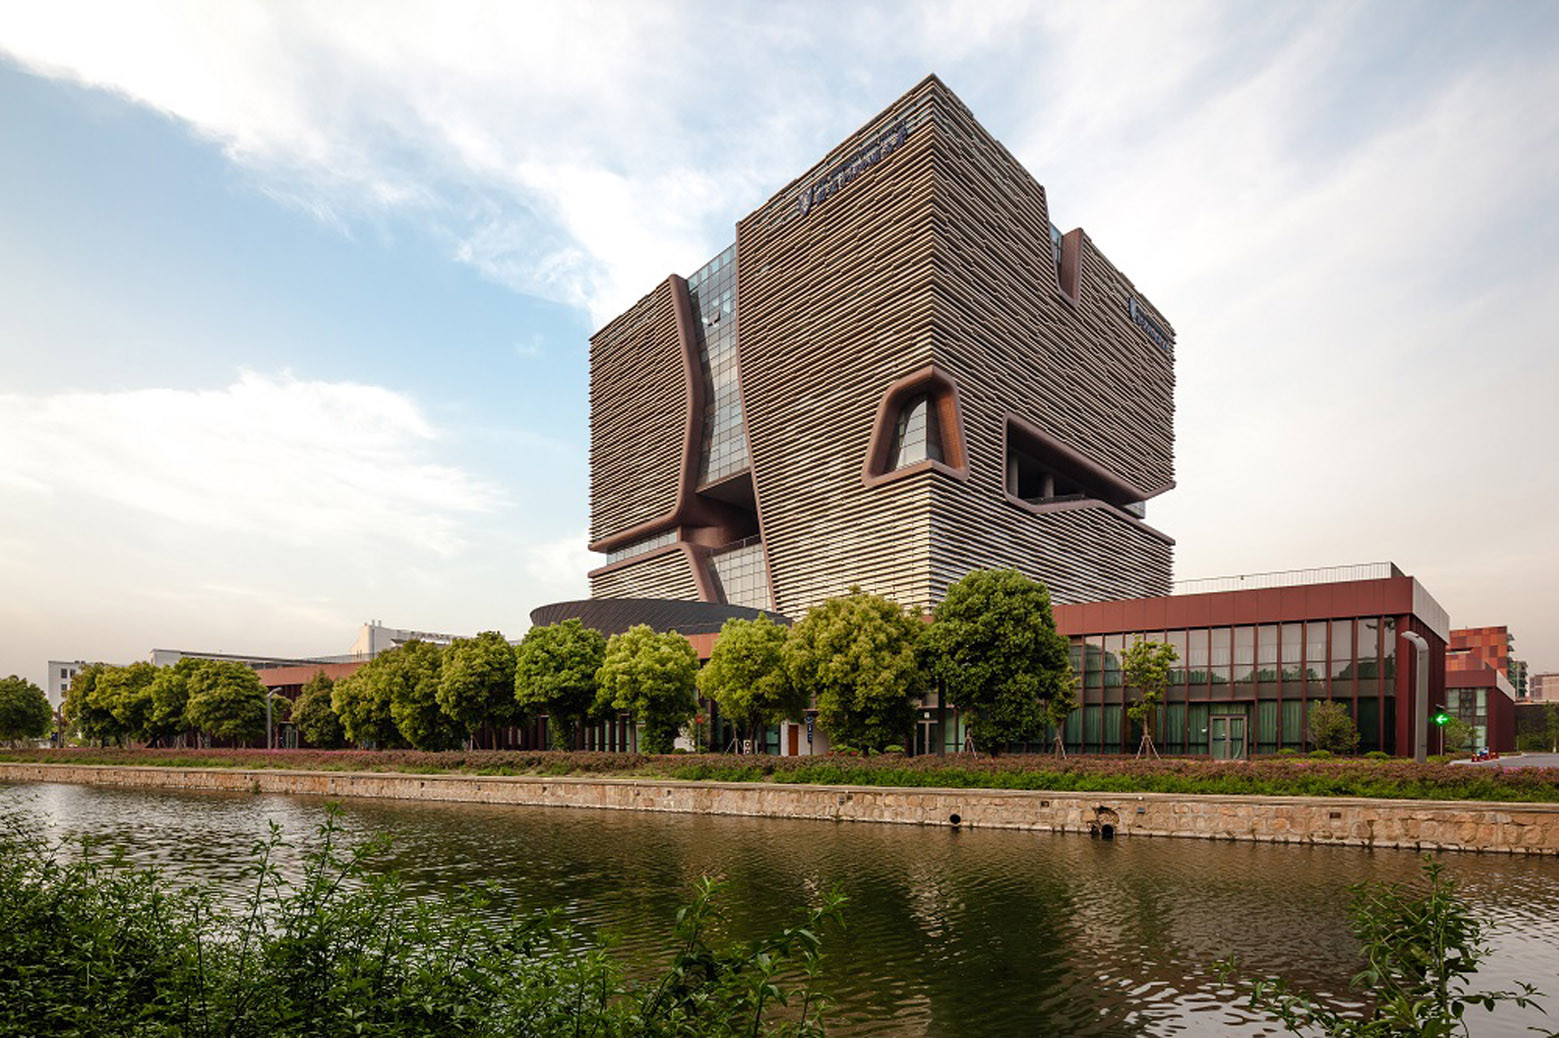 Xi'an Jiaotong-Liverpool University Administration Information Building / Aedas, Courtesy of Aedas